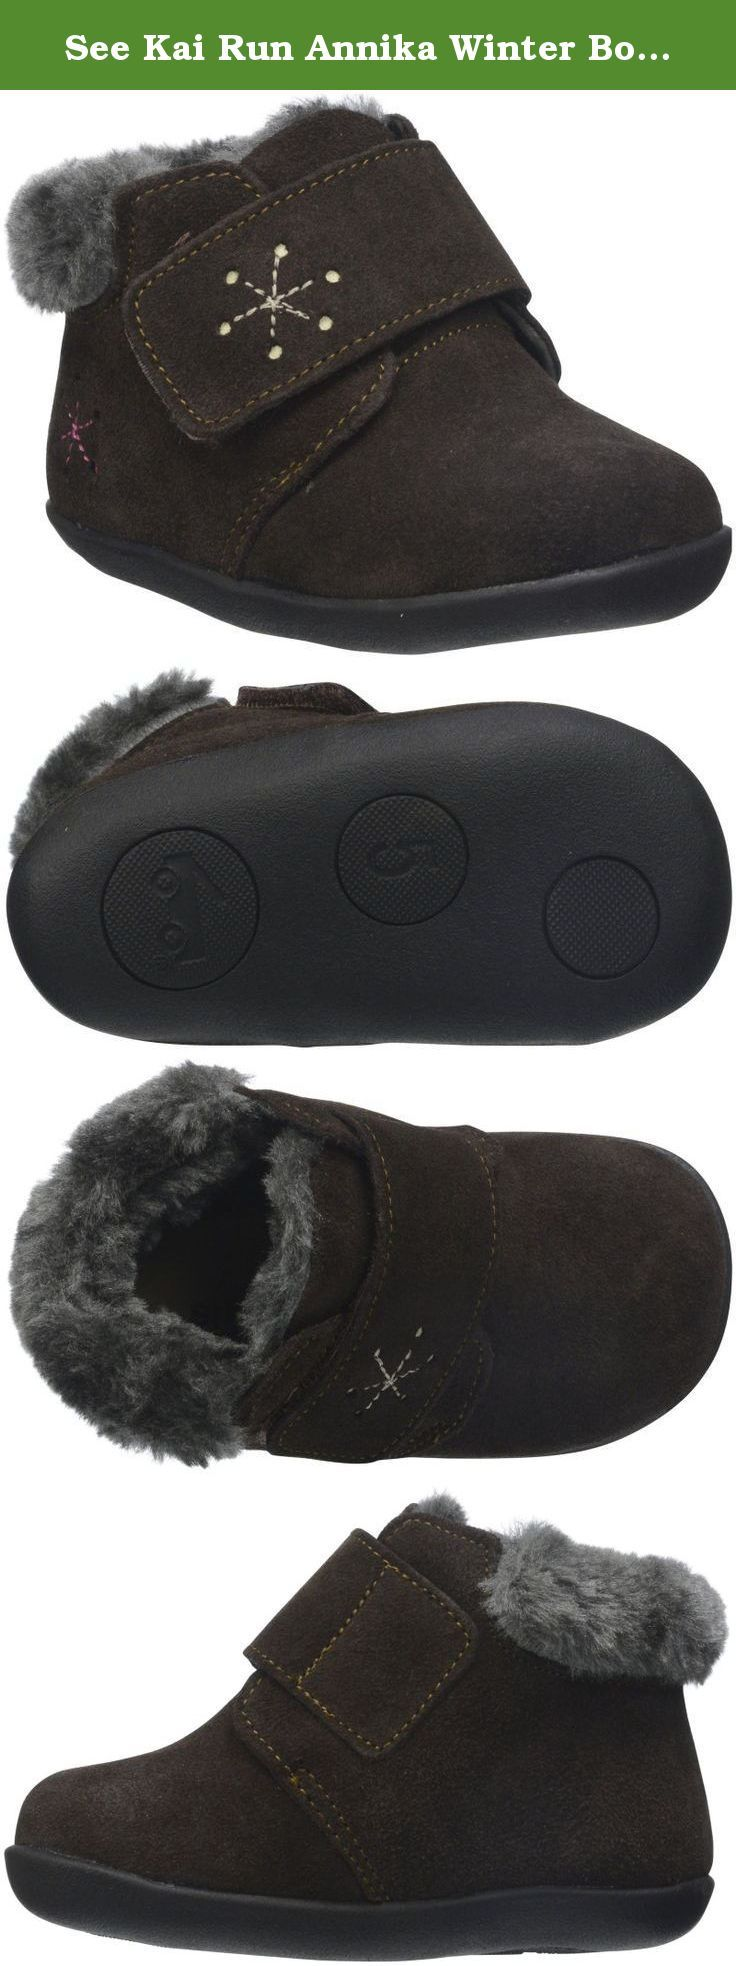 See Kai Run Annika Winter Boot (Infant/Toddler), Brown, 6 M US Toddler. This suede boot with its plush lining and snowflake cutouts will keep her toes cozy no matter what the day brings. The new rubber outsole is built for taking those very first steps, while the wide opening allows easy on/off. Rubber outsole provides balance, grip, durability and traction Wide toe box allows wiggle room and healthy foot development. Padded collar for extra comfort Adjustable hook-and-loop closure.